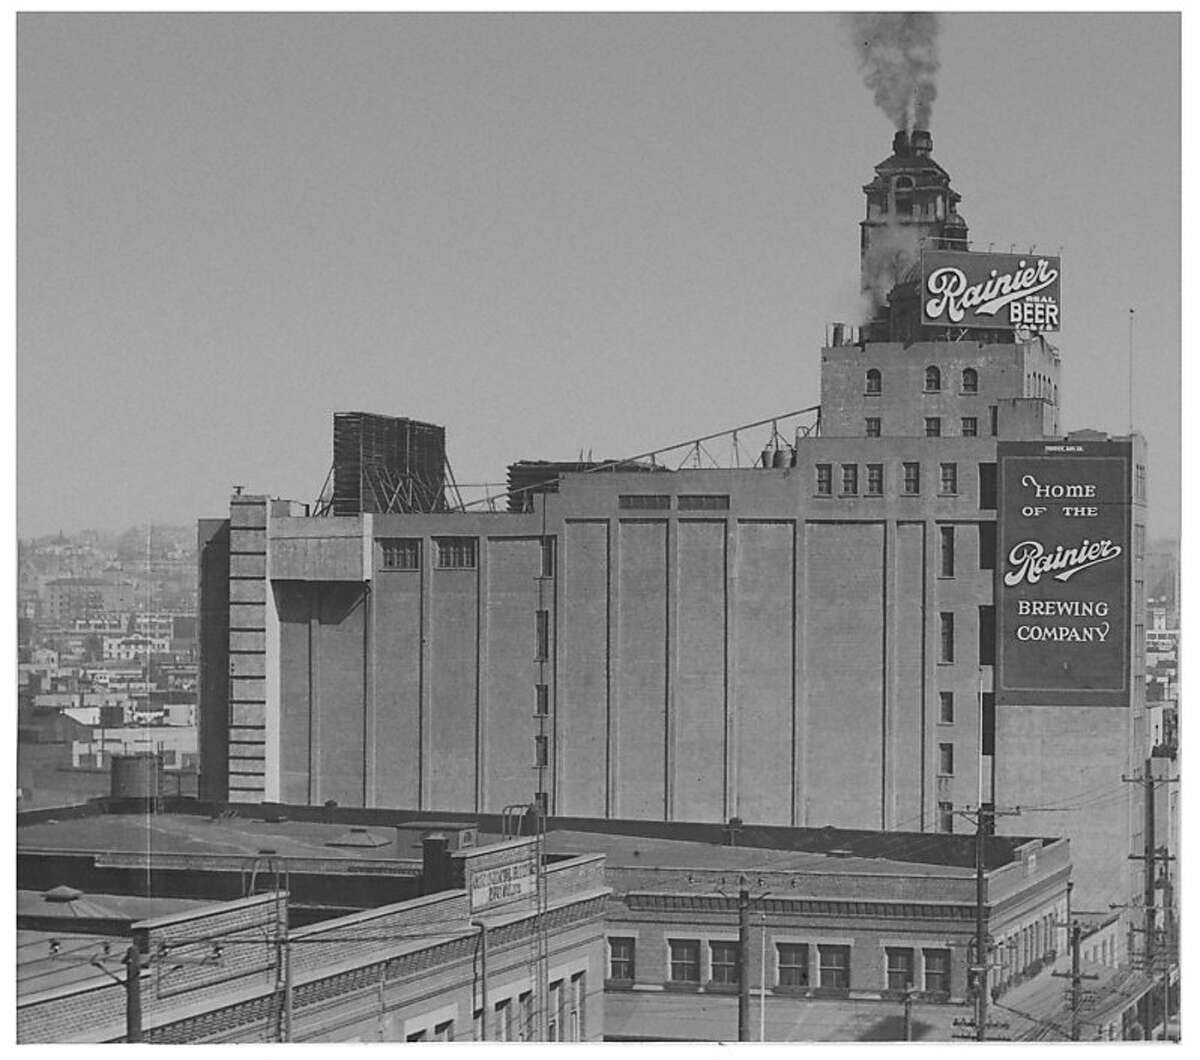 From the 1930s to the 1950s, Rainier Ale had brewing facilities in Seattle and San Francisco, including this one at 1800 Bryant St.